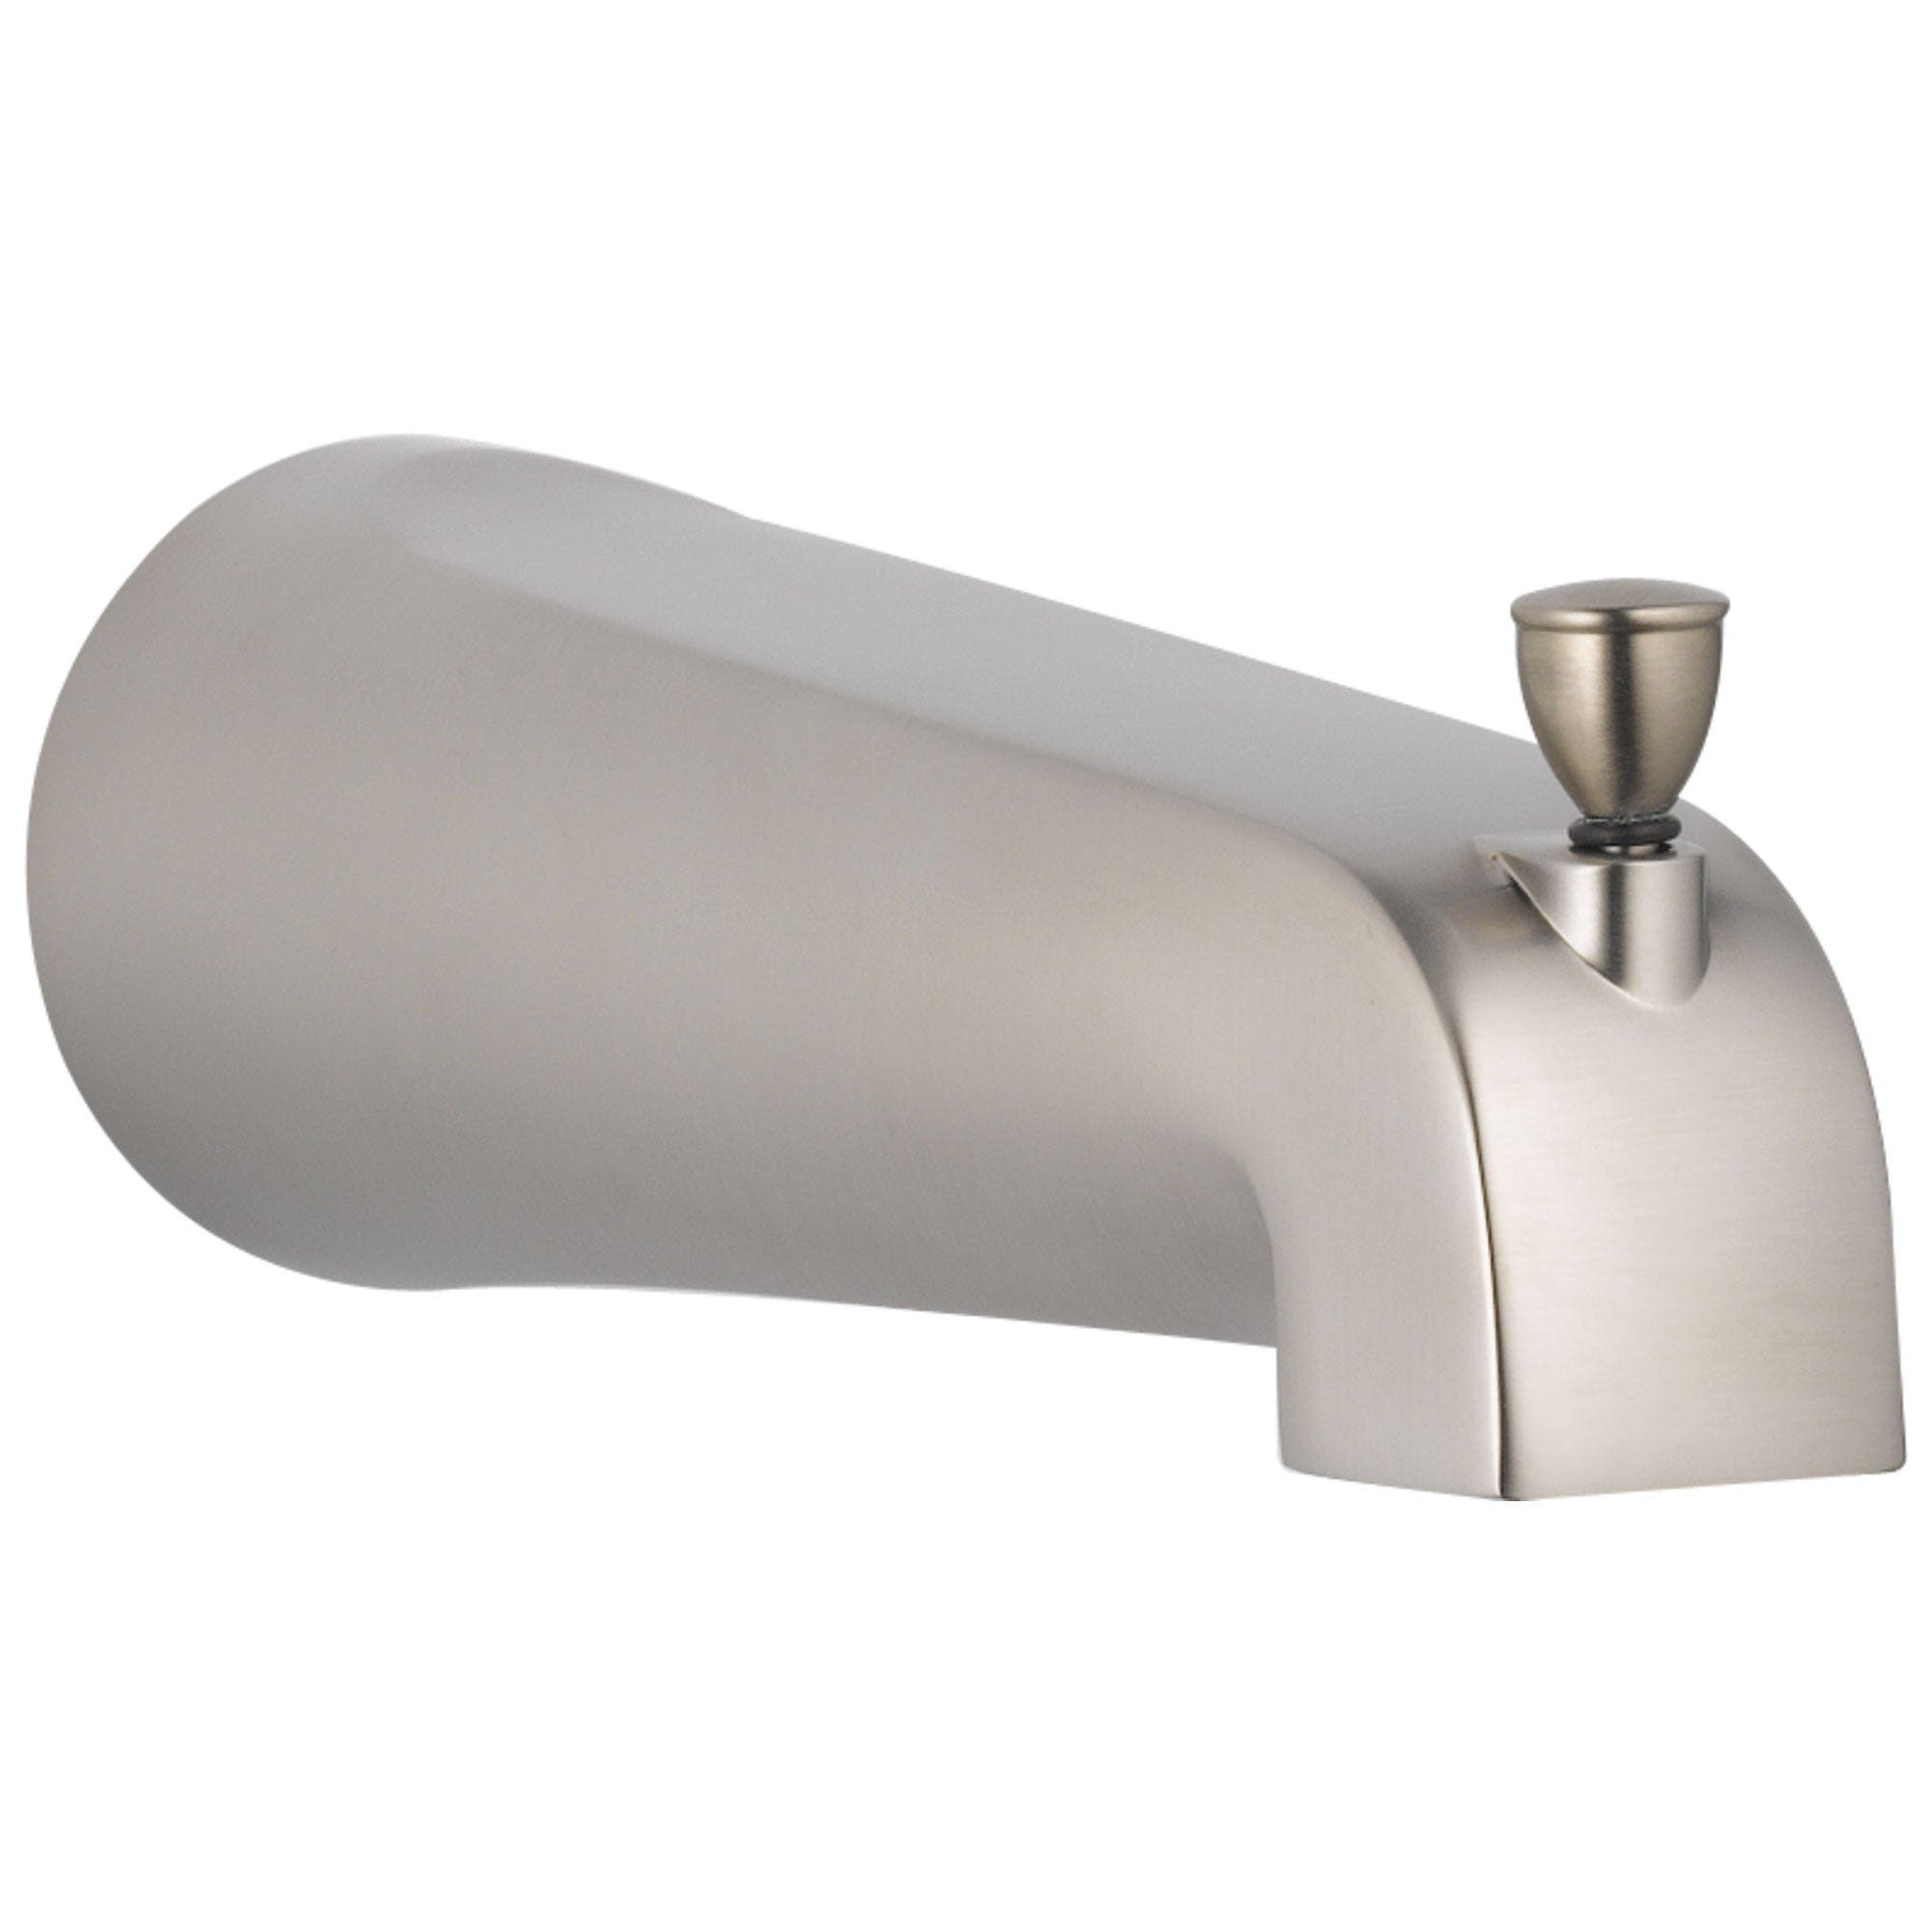 Delta Foundations Stainless Steel Finish Tub Spout with Pull-Up Diverter DRP64721SS